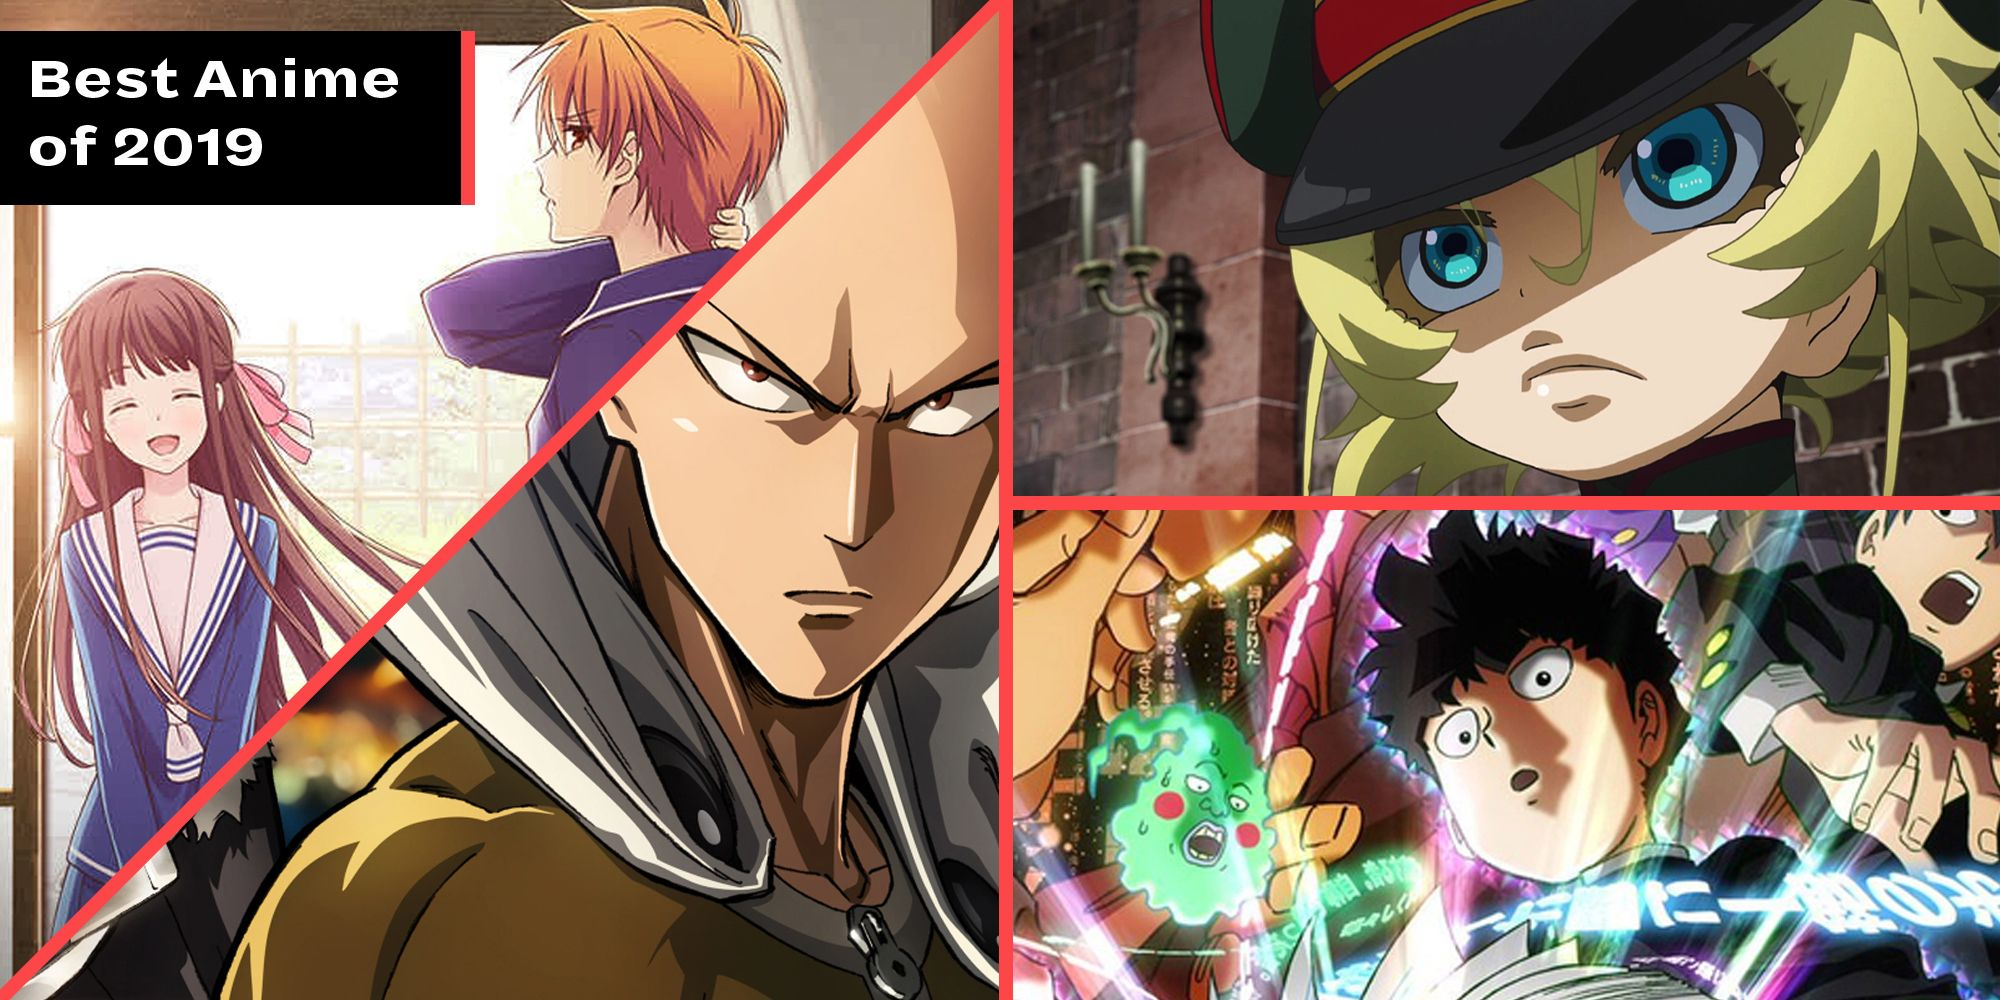 The Best Anime Of 2019 Top 10 New Anime Movies And Series To Watch